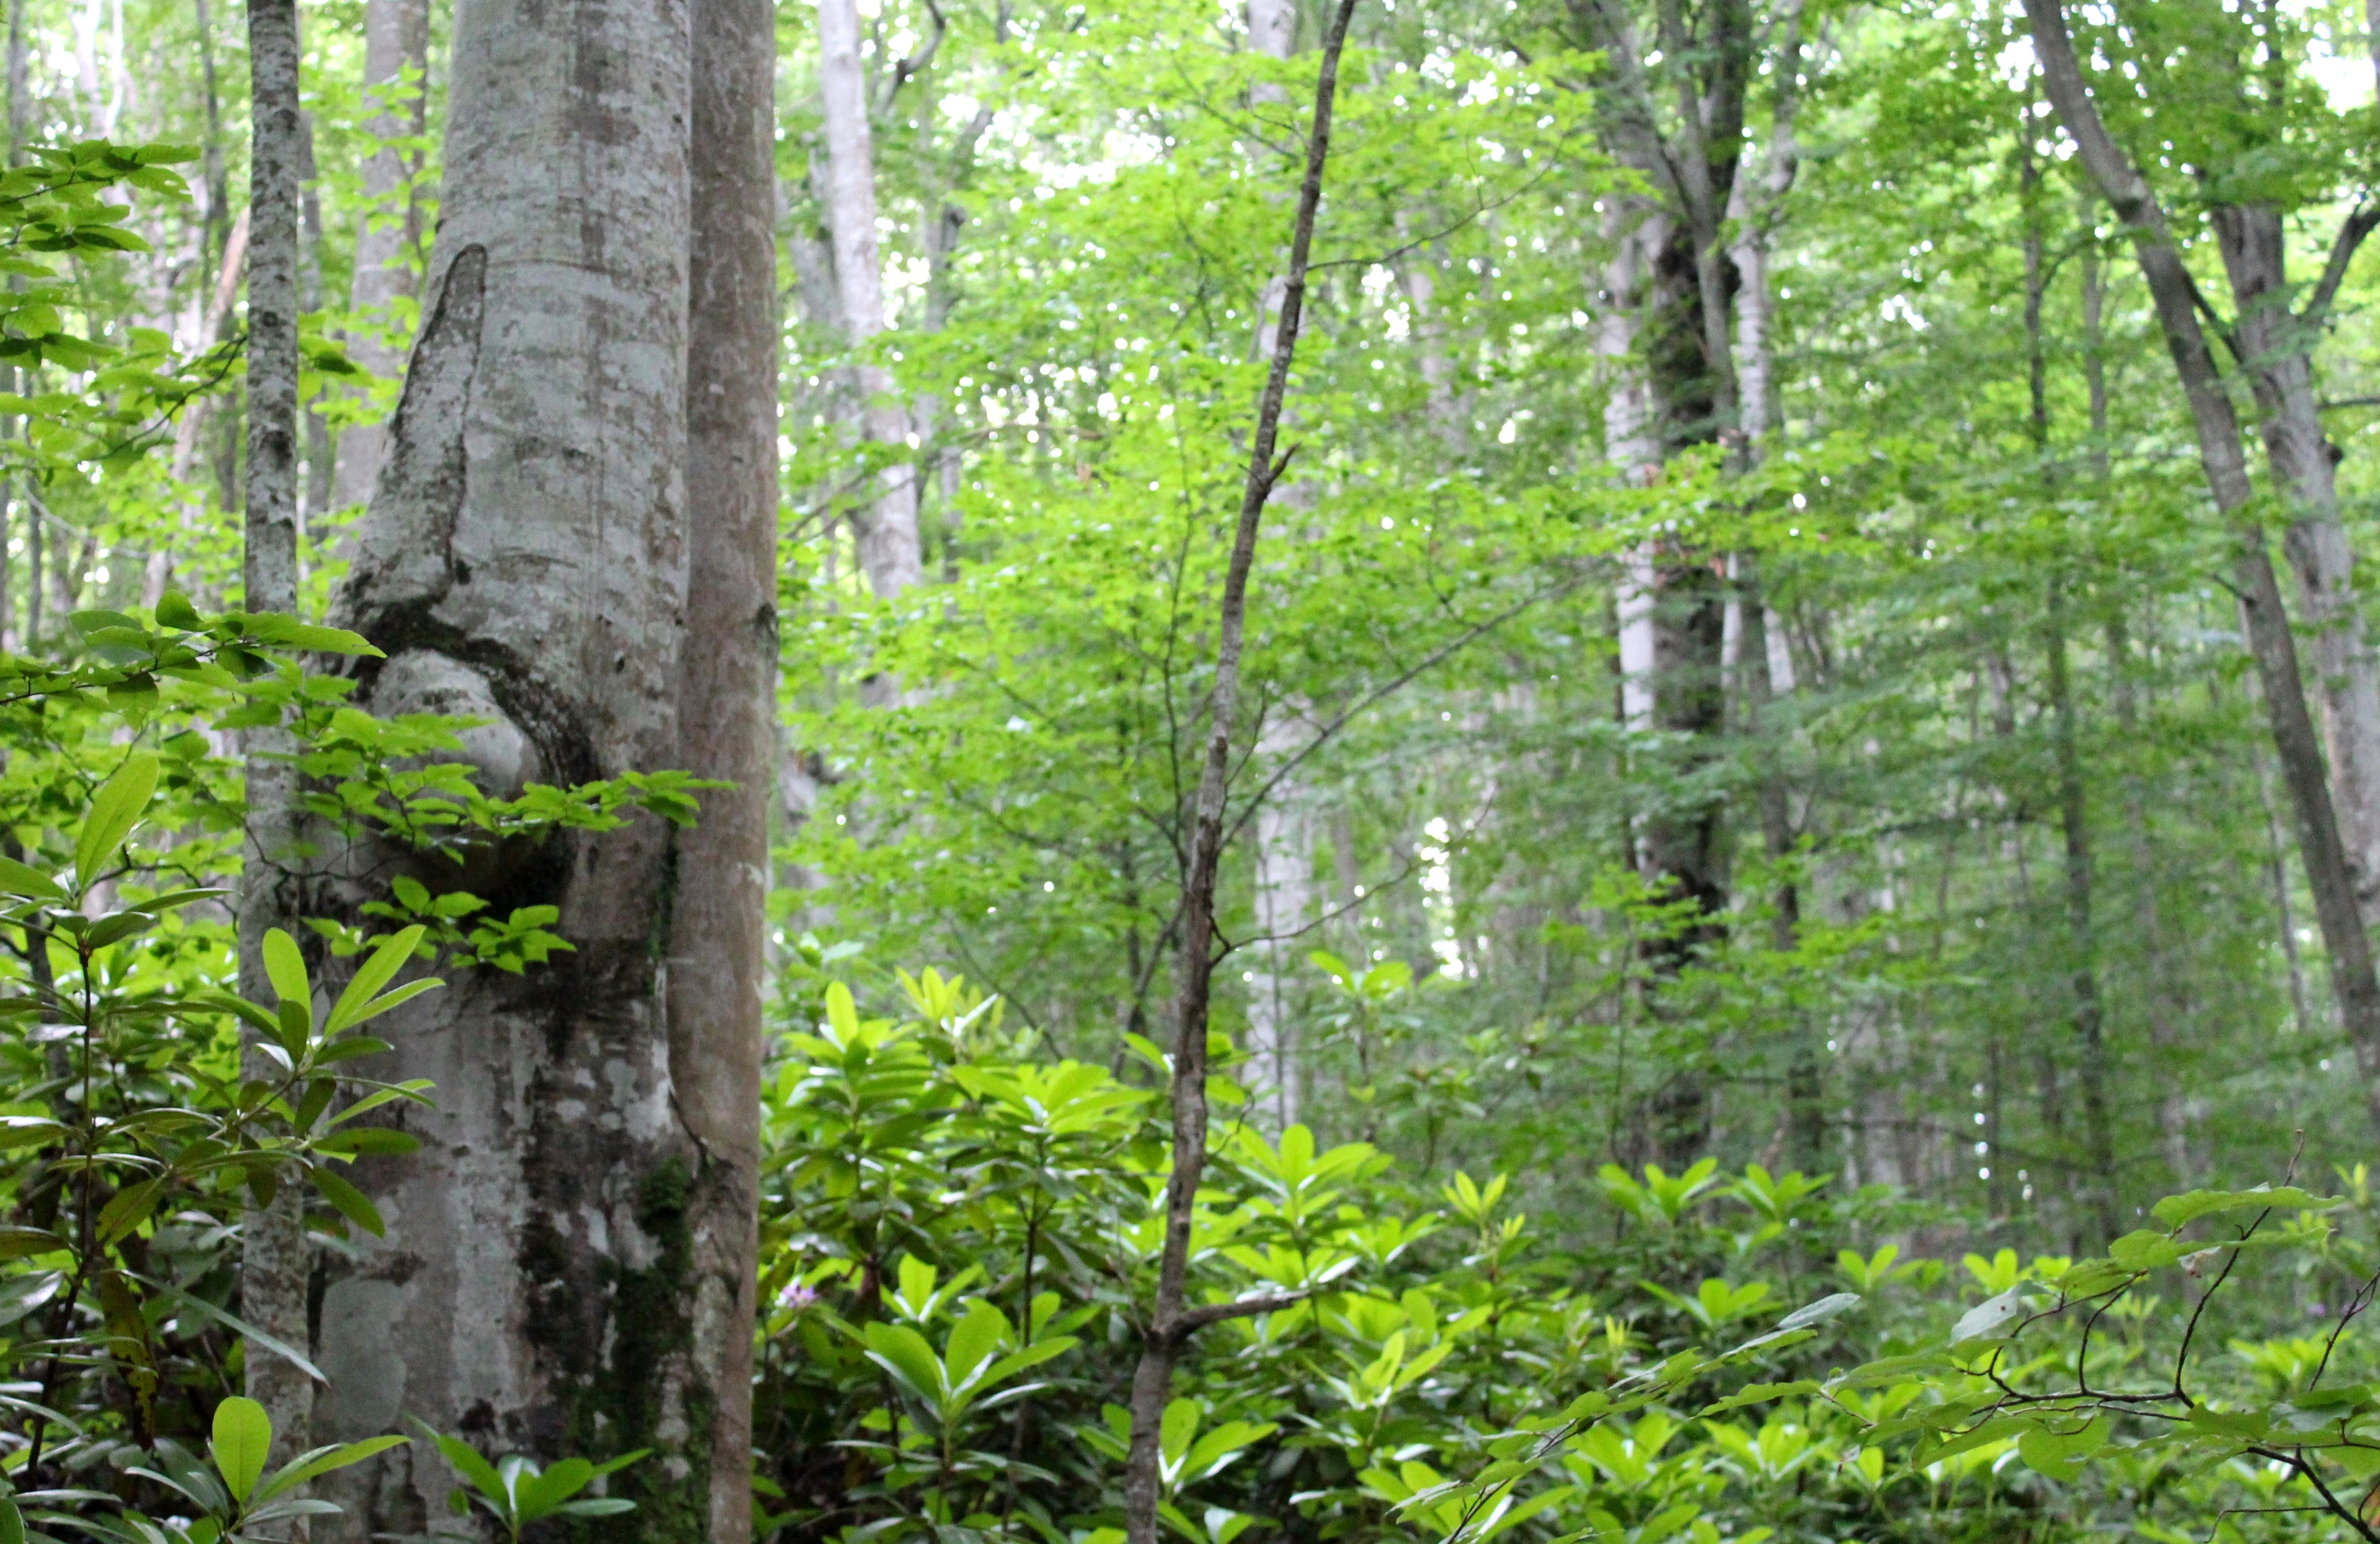 Virgin Forests: WWF Saving the Last Remaining in Europe, Part 1 | WWF